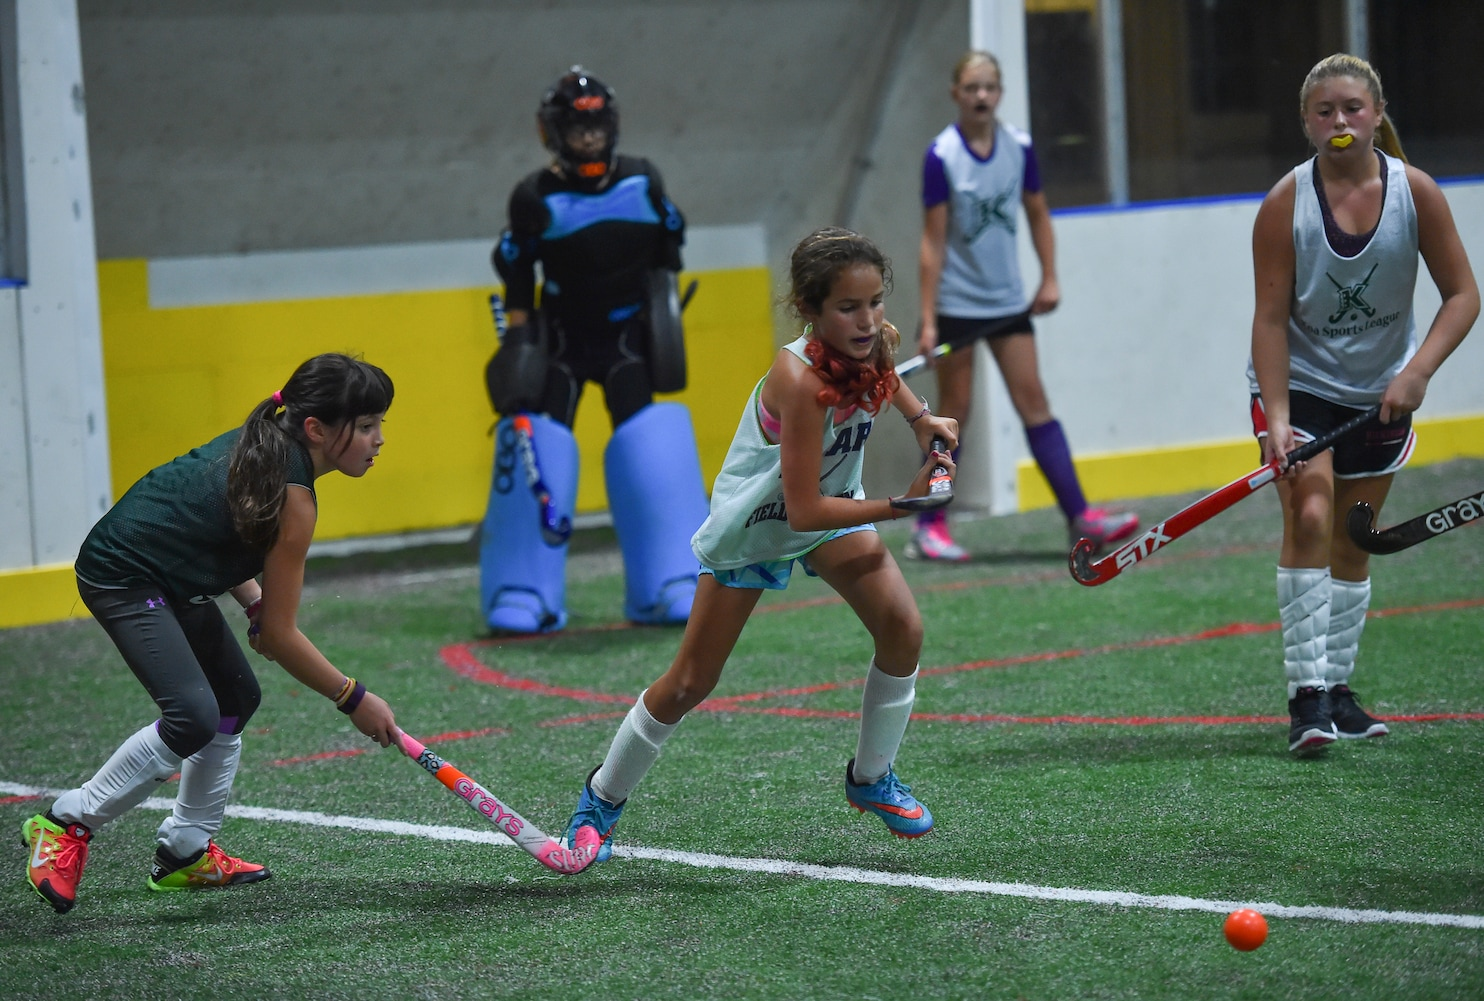 Are Parents Ruining Youth Sports Fewer Kids Play Amid